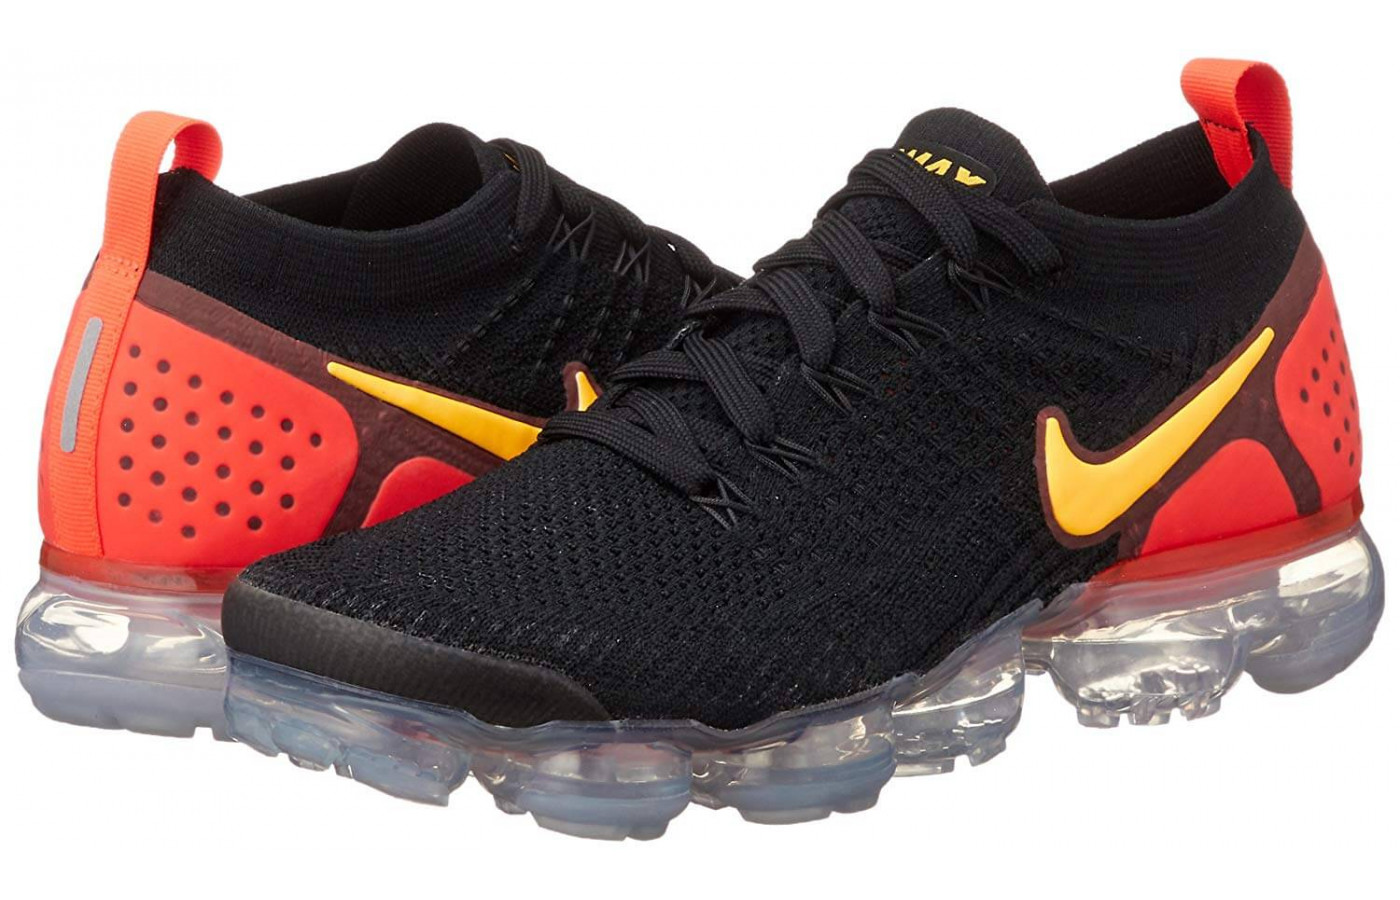 61d0ea9a6210f Nike Air VaporMax Flyknit 2 - To Buy or Not in May 2019